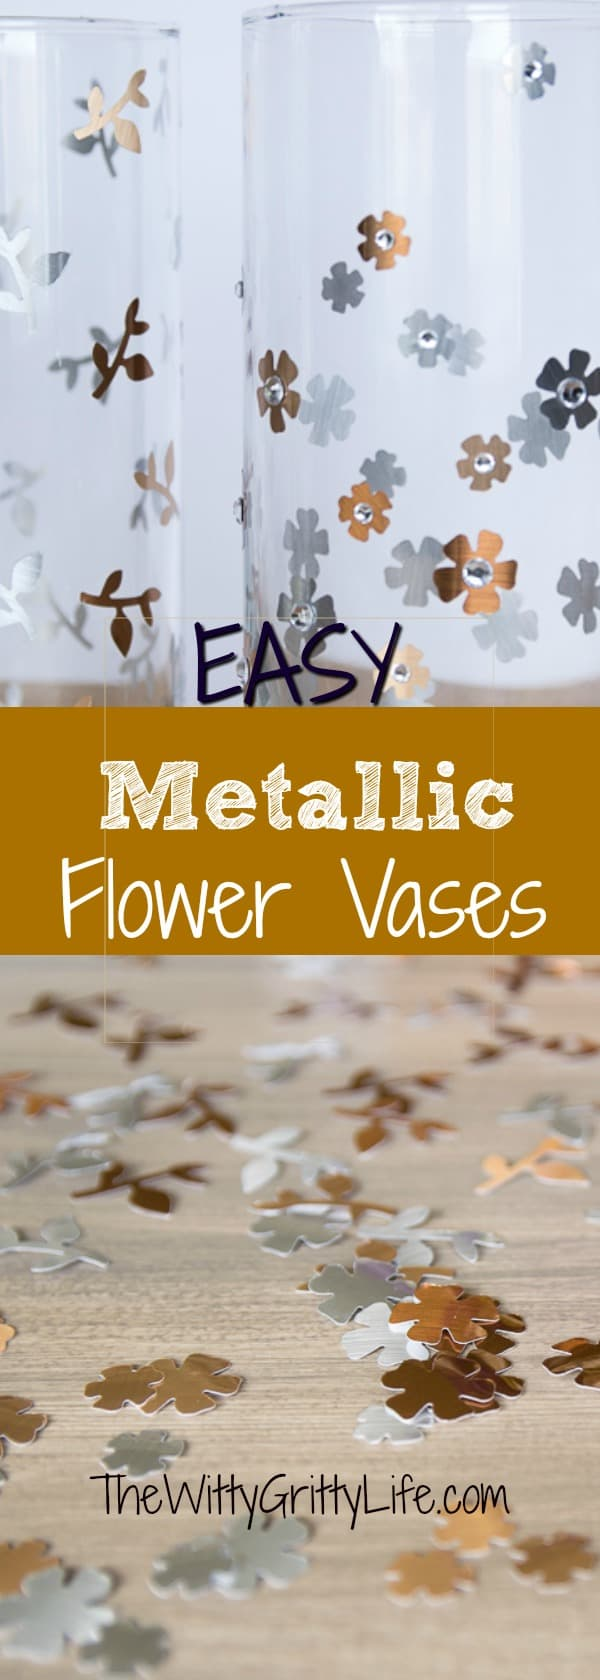 Learn how to create these fun mixed metal flower vases from simple, inexpensive glass cylinders! They are so fun and easy to make , you' won't have to settle for boring vases anymore. The best part? They make awesome candle holders too!